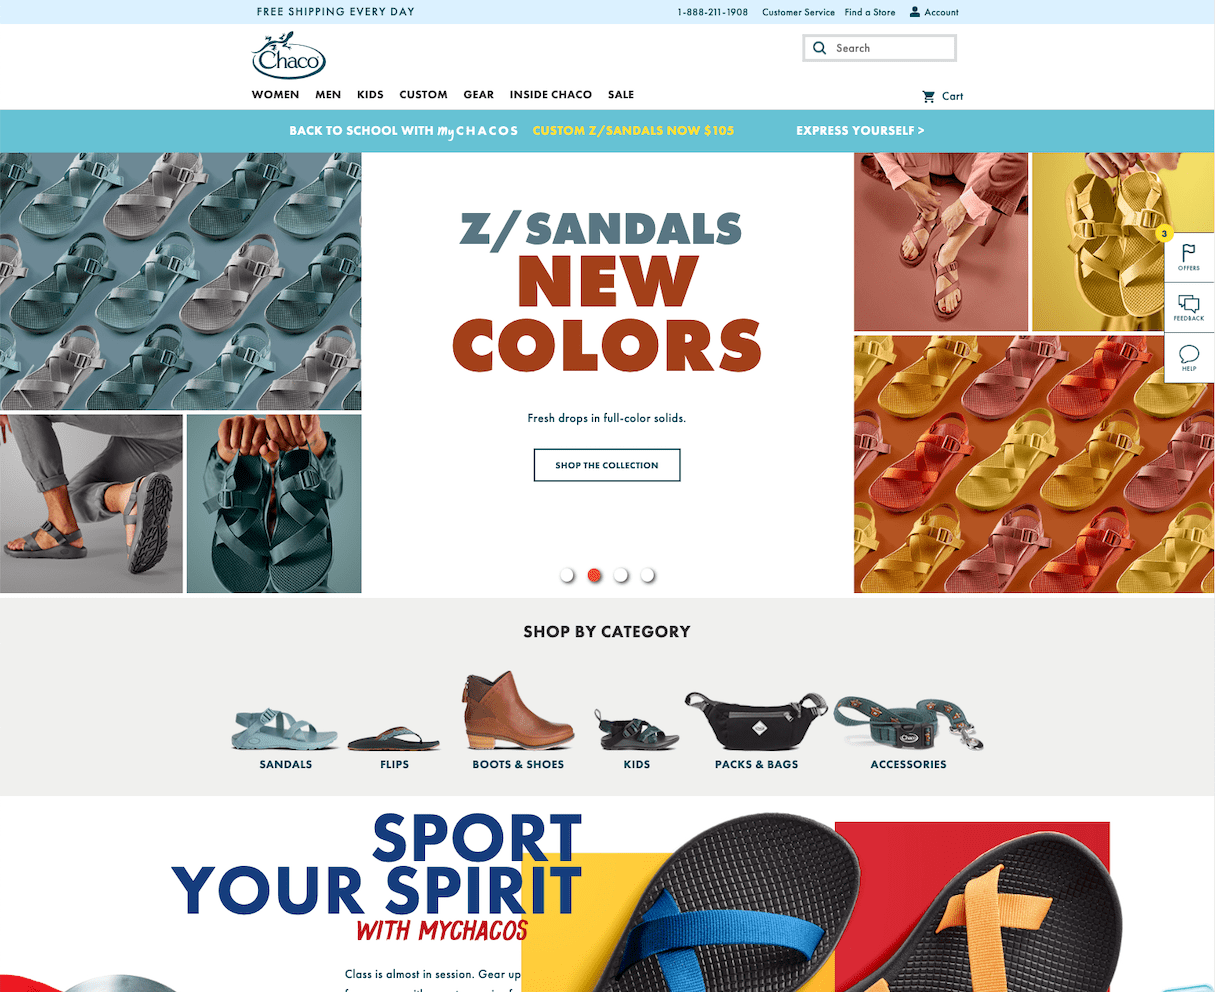 website color schemes: chacos